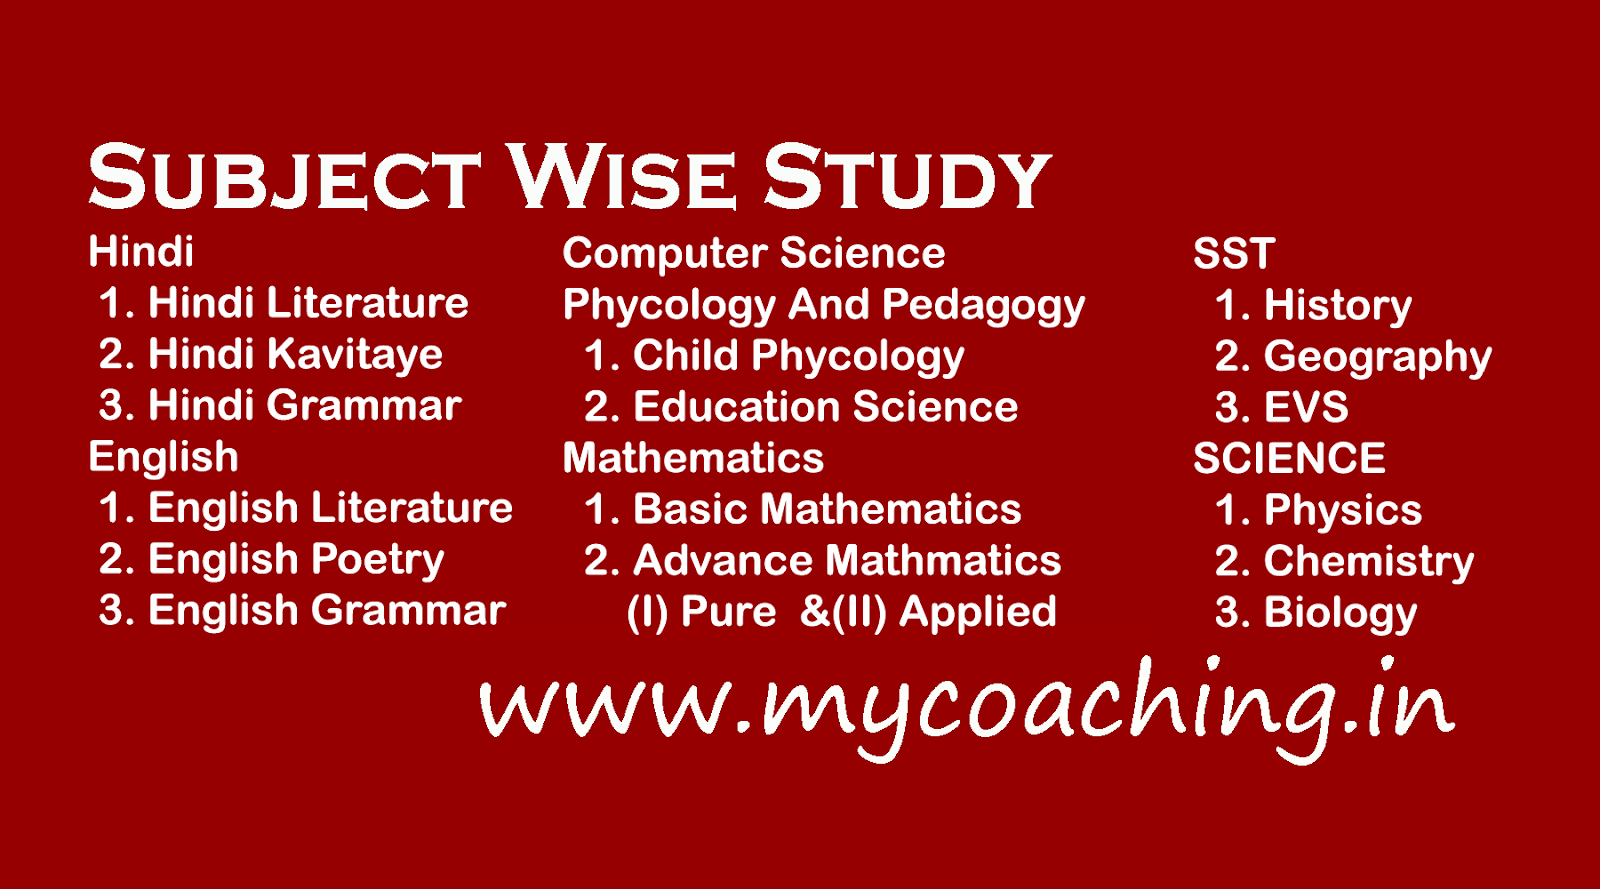 Study: Subject Wise Study - Online